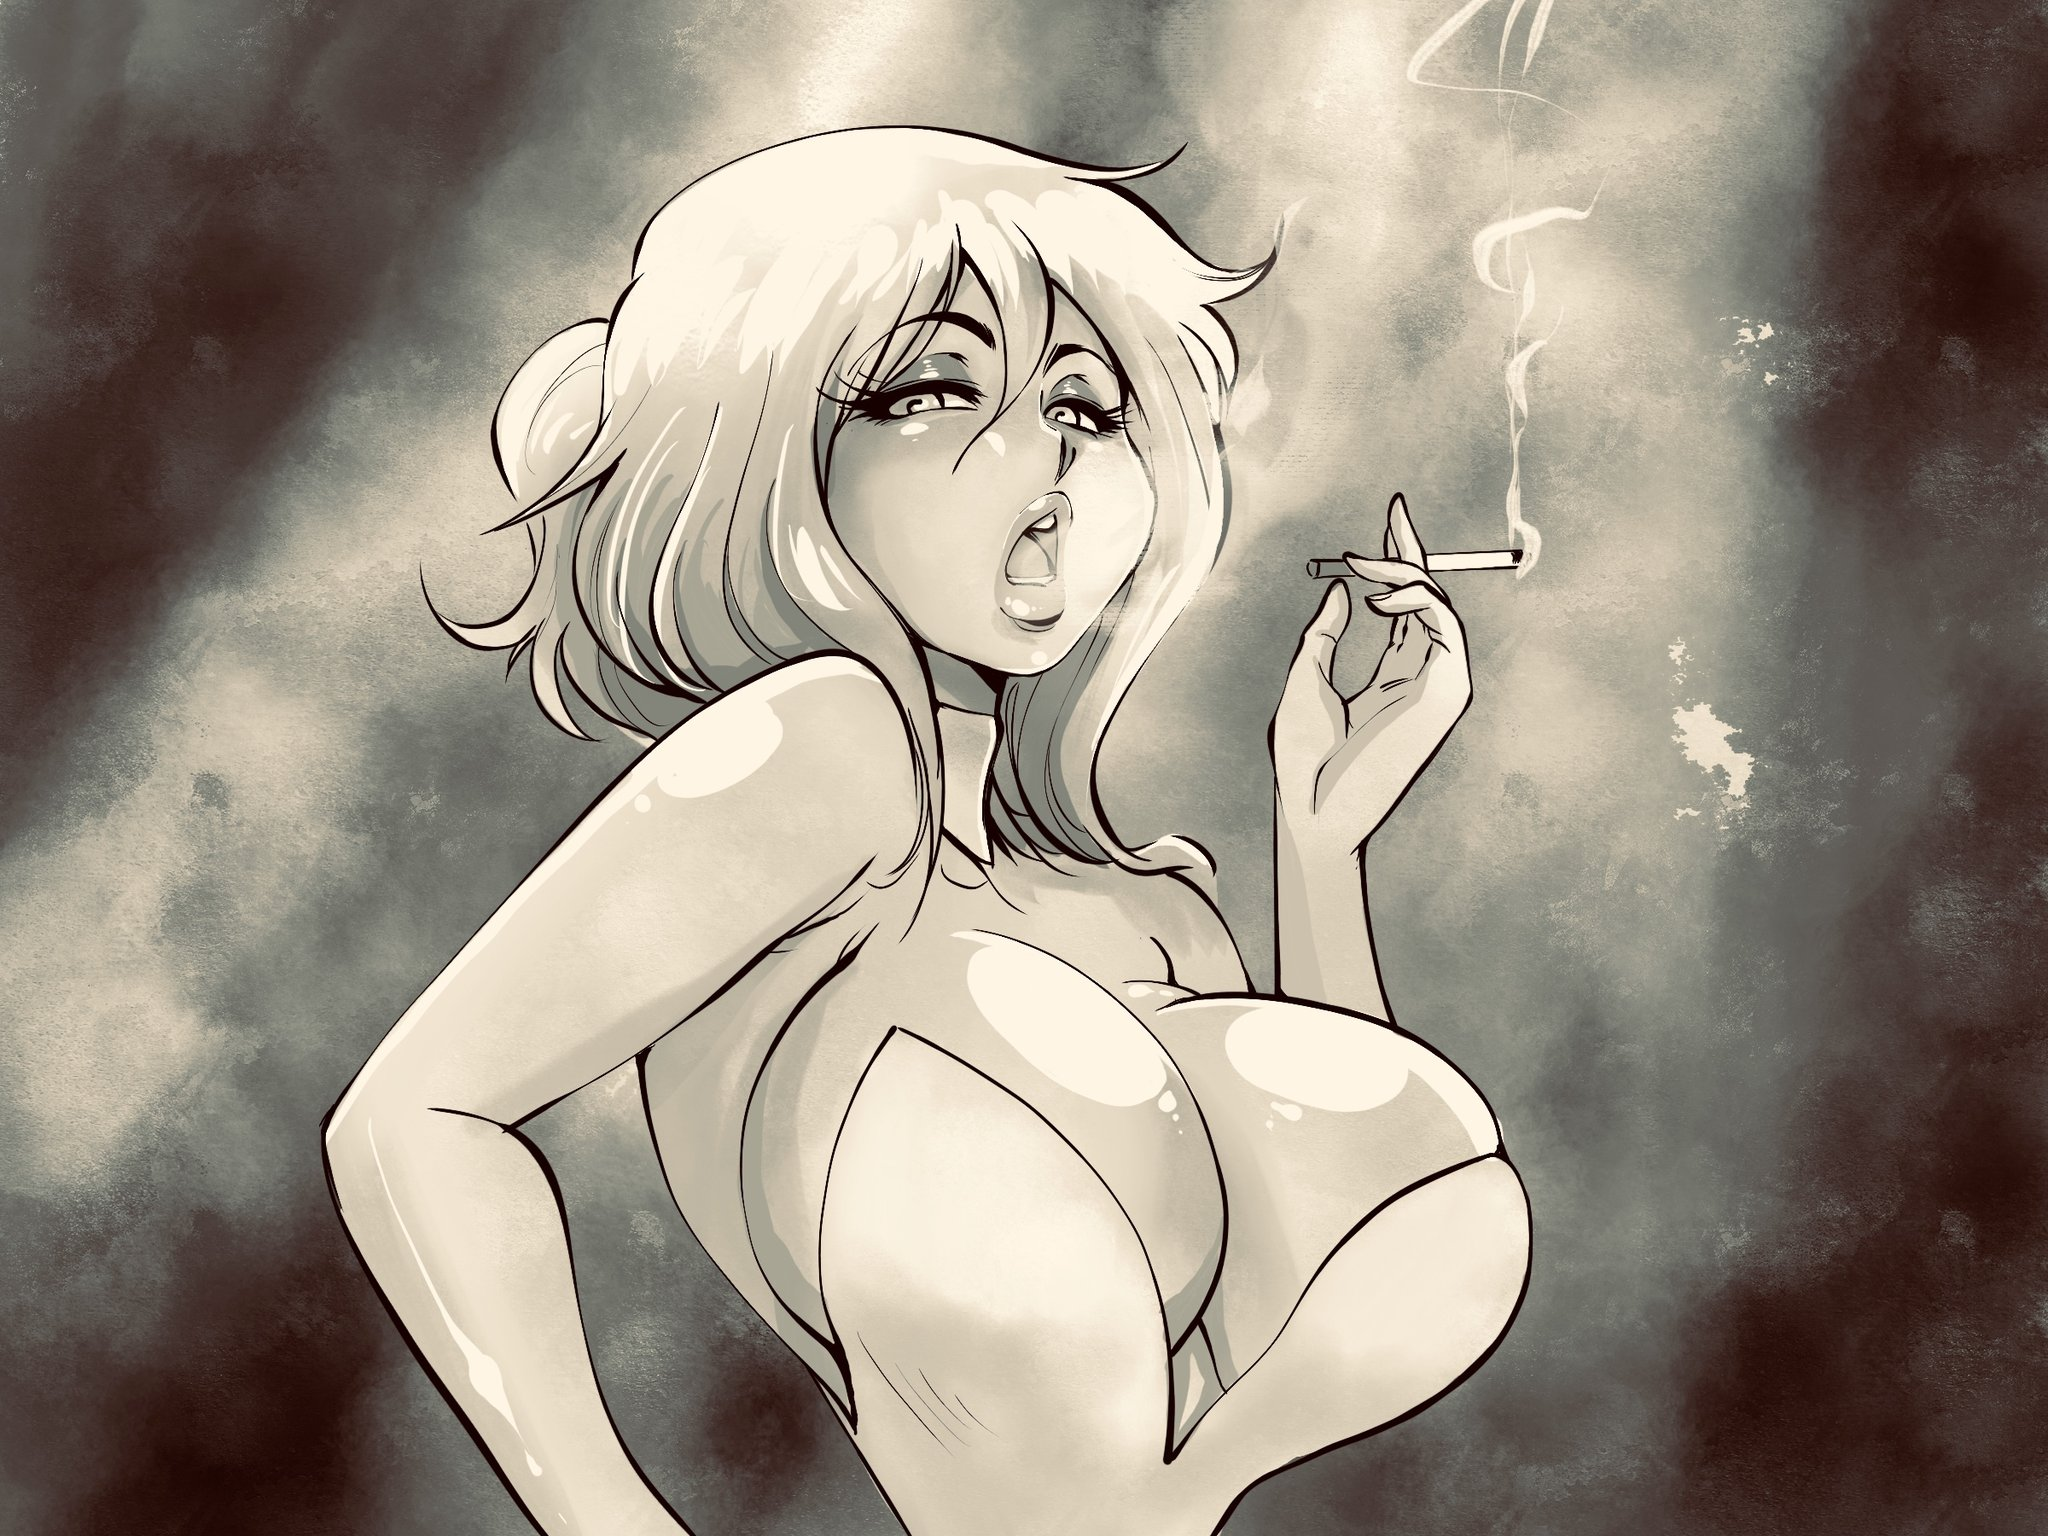 Balak On Twitter Holli Would Cool World She is a doodle inhabitant of cool world, but she wants to be a real woman living in the real world and she is willing to resort to anything without hesitation to make her dreams come true, even killing. balak on twitter holli would cool